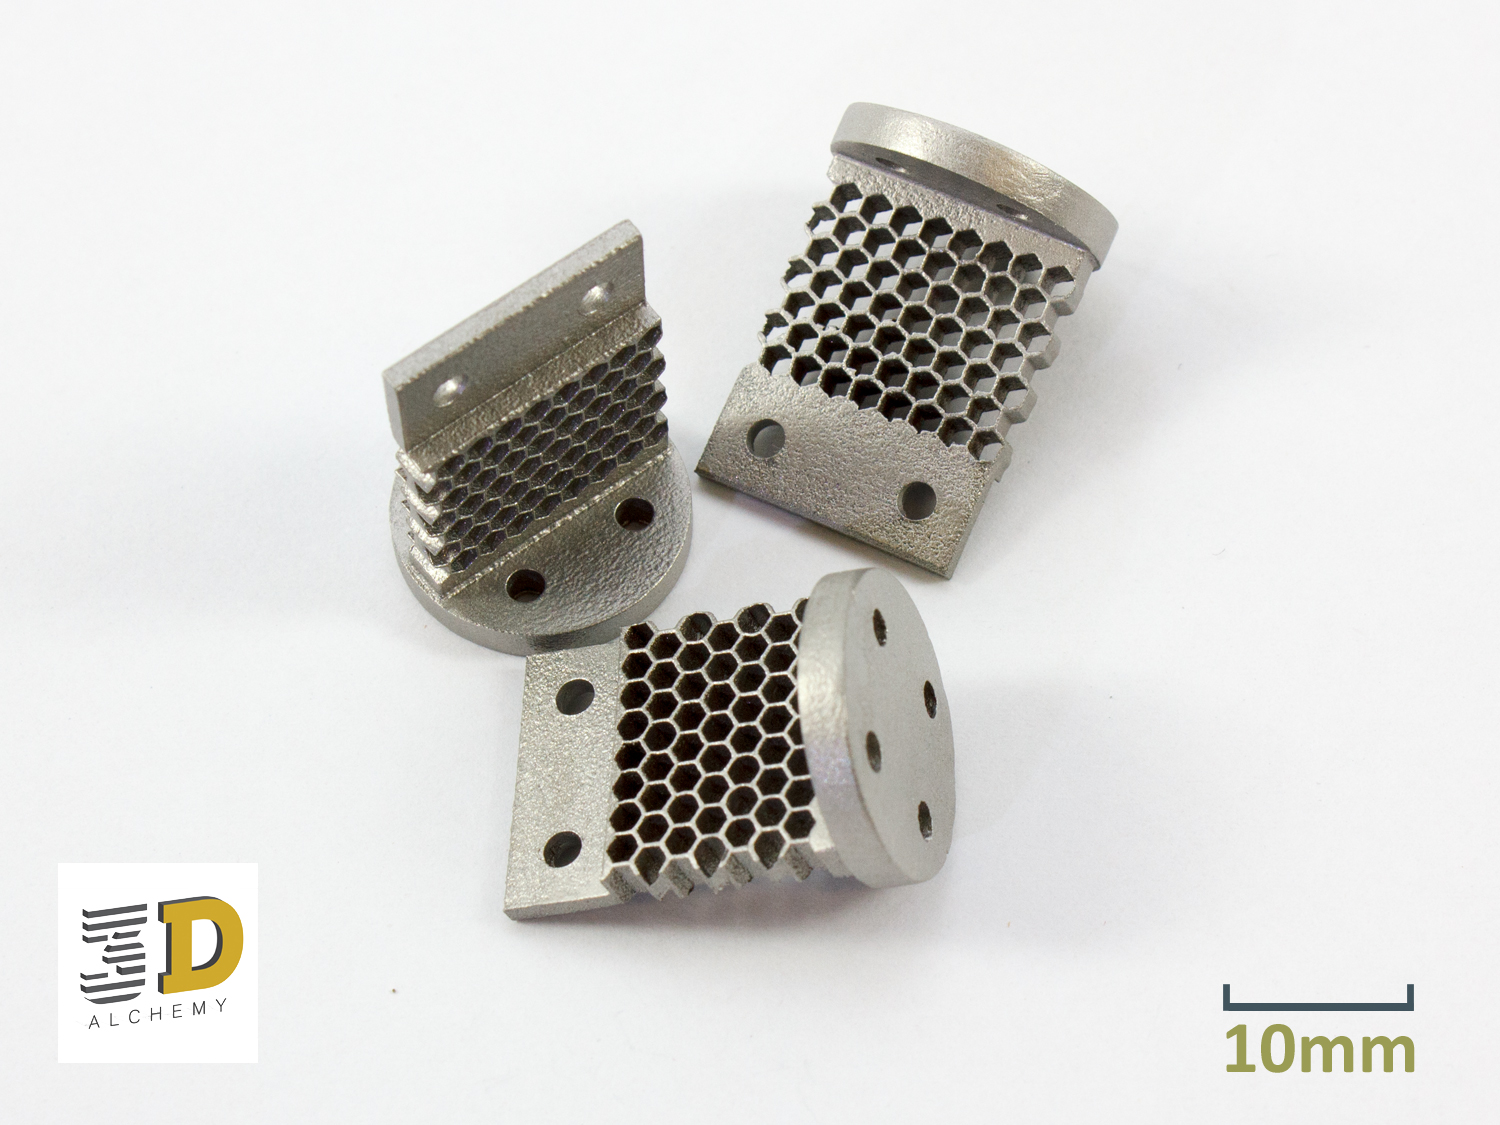 3D Printed heat sinks in stainless steel.